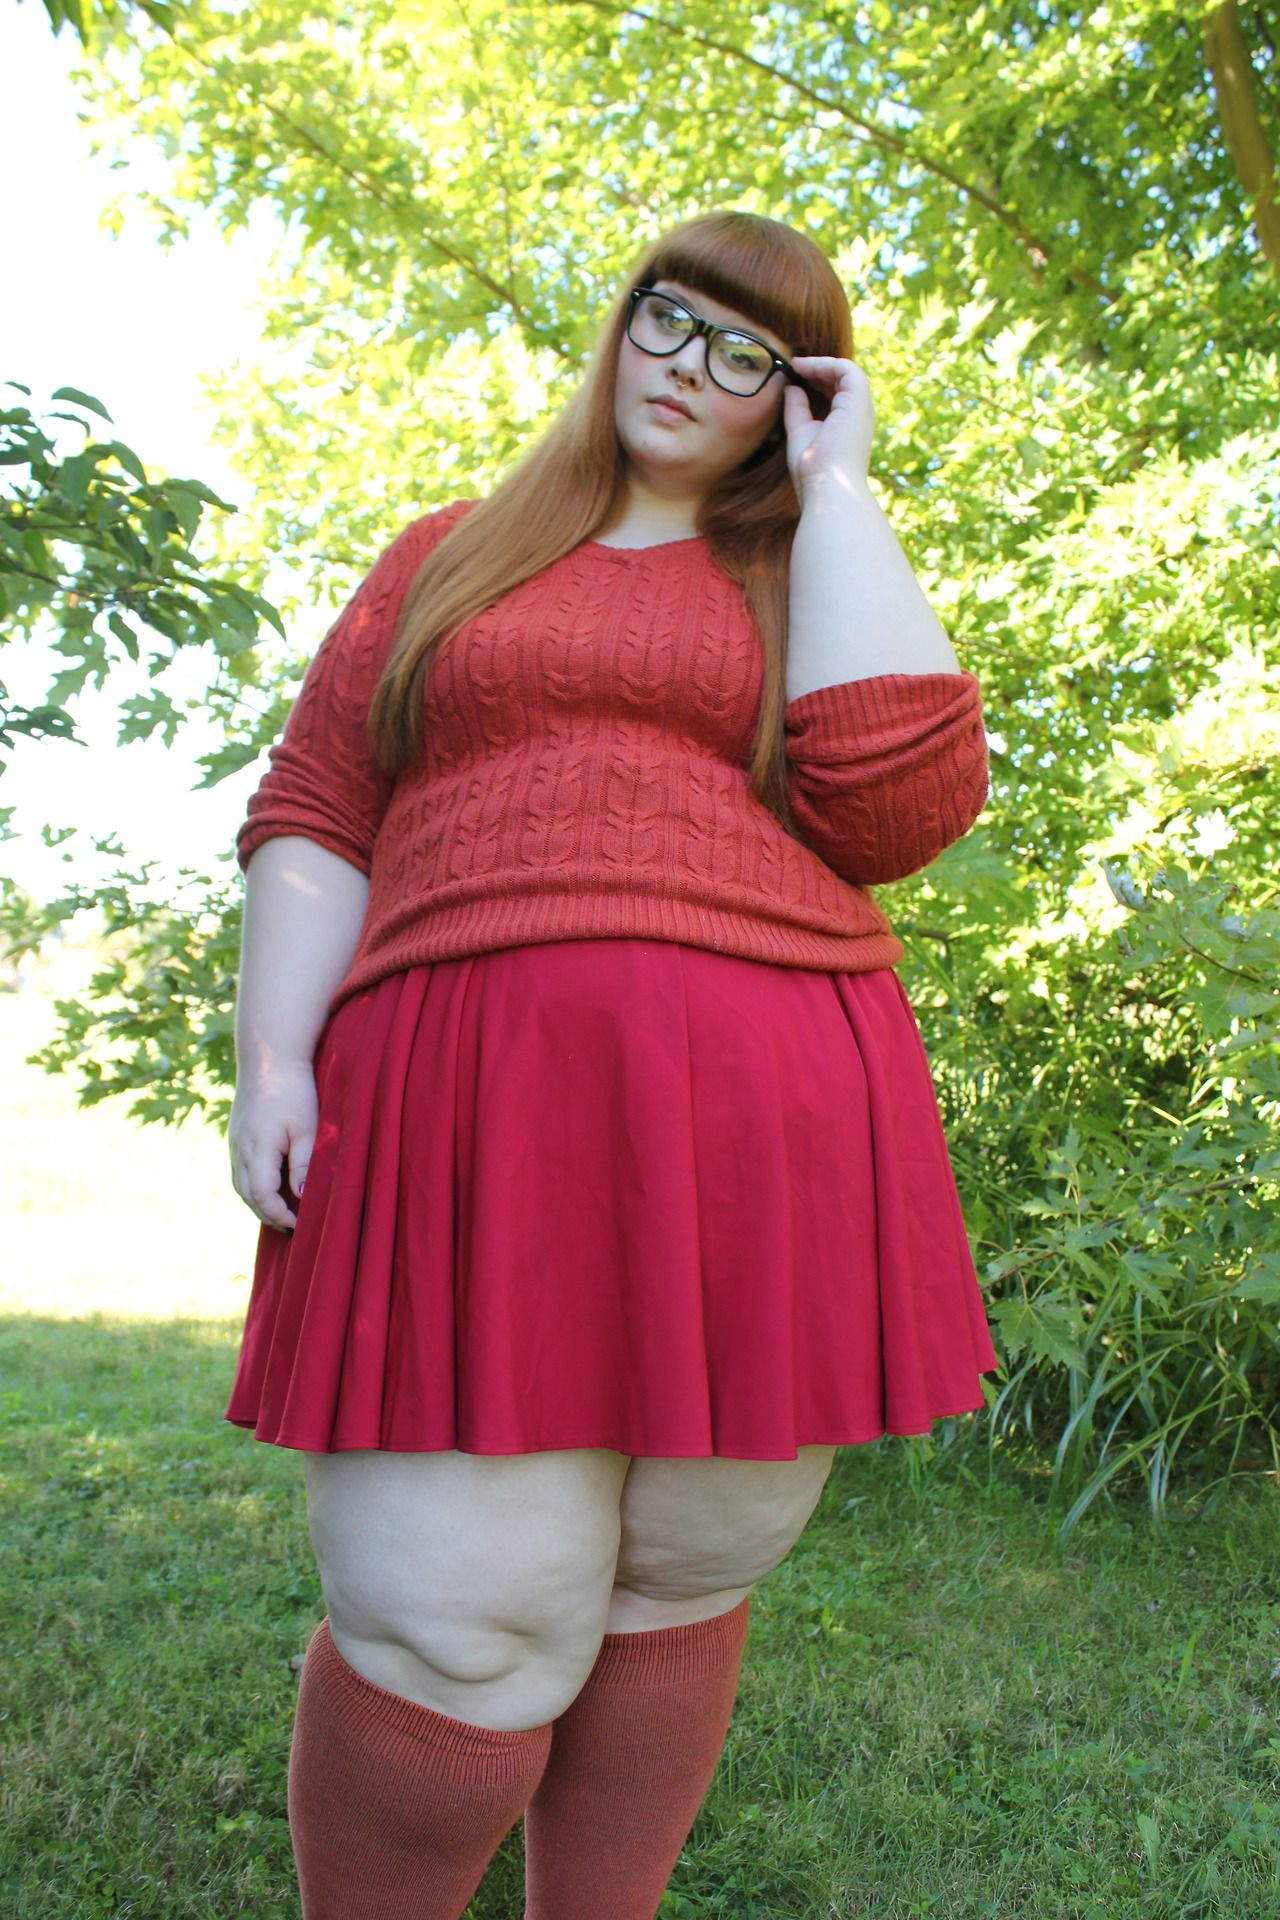 mantee bbw dating site Welcome to real bbw dating, the best site if you are looking for a bbw date in your area we have thousands of members online day and night looking to meet up for casual bbw fun, and make no mistake, you are will joining the world's best upcoming bbw dating site.